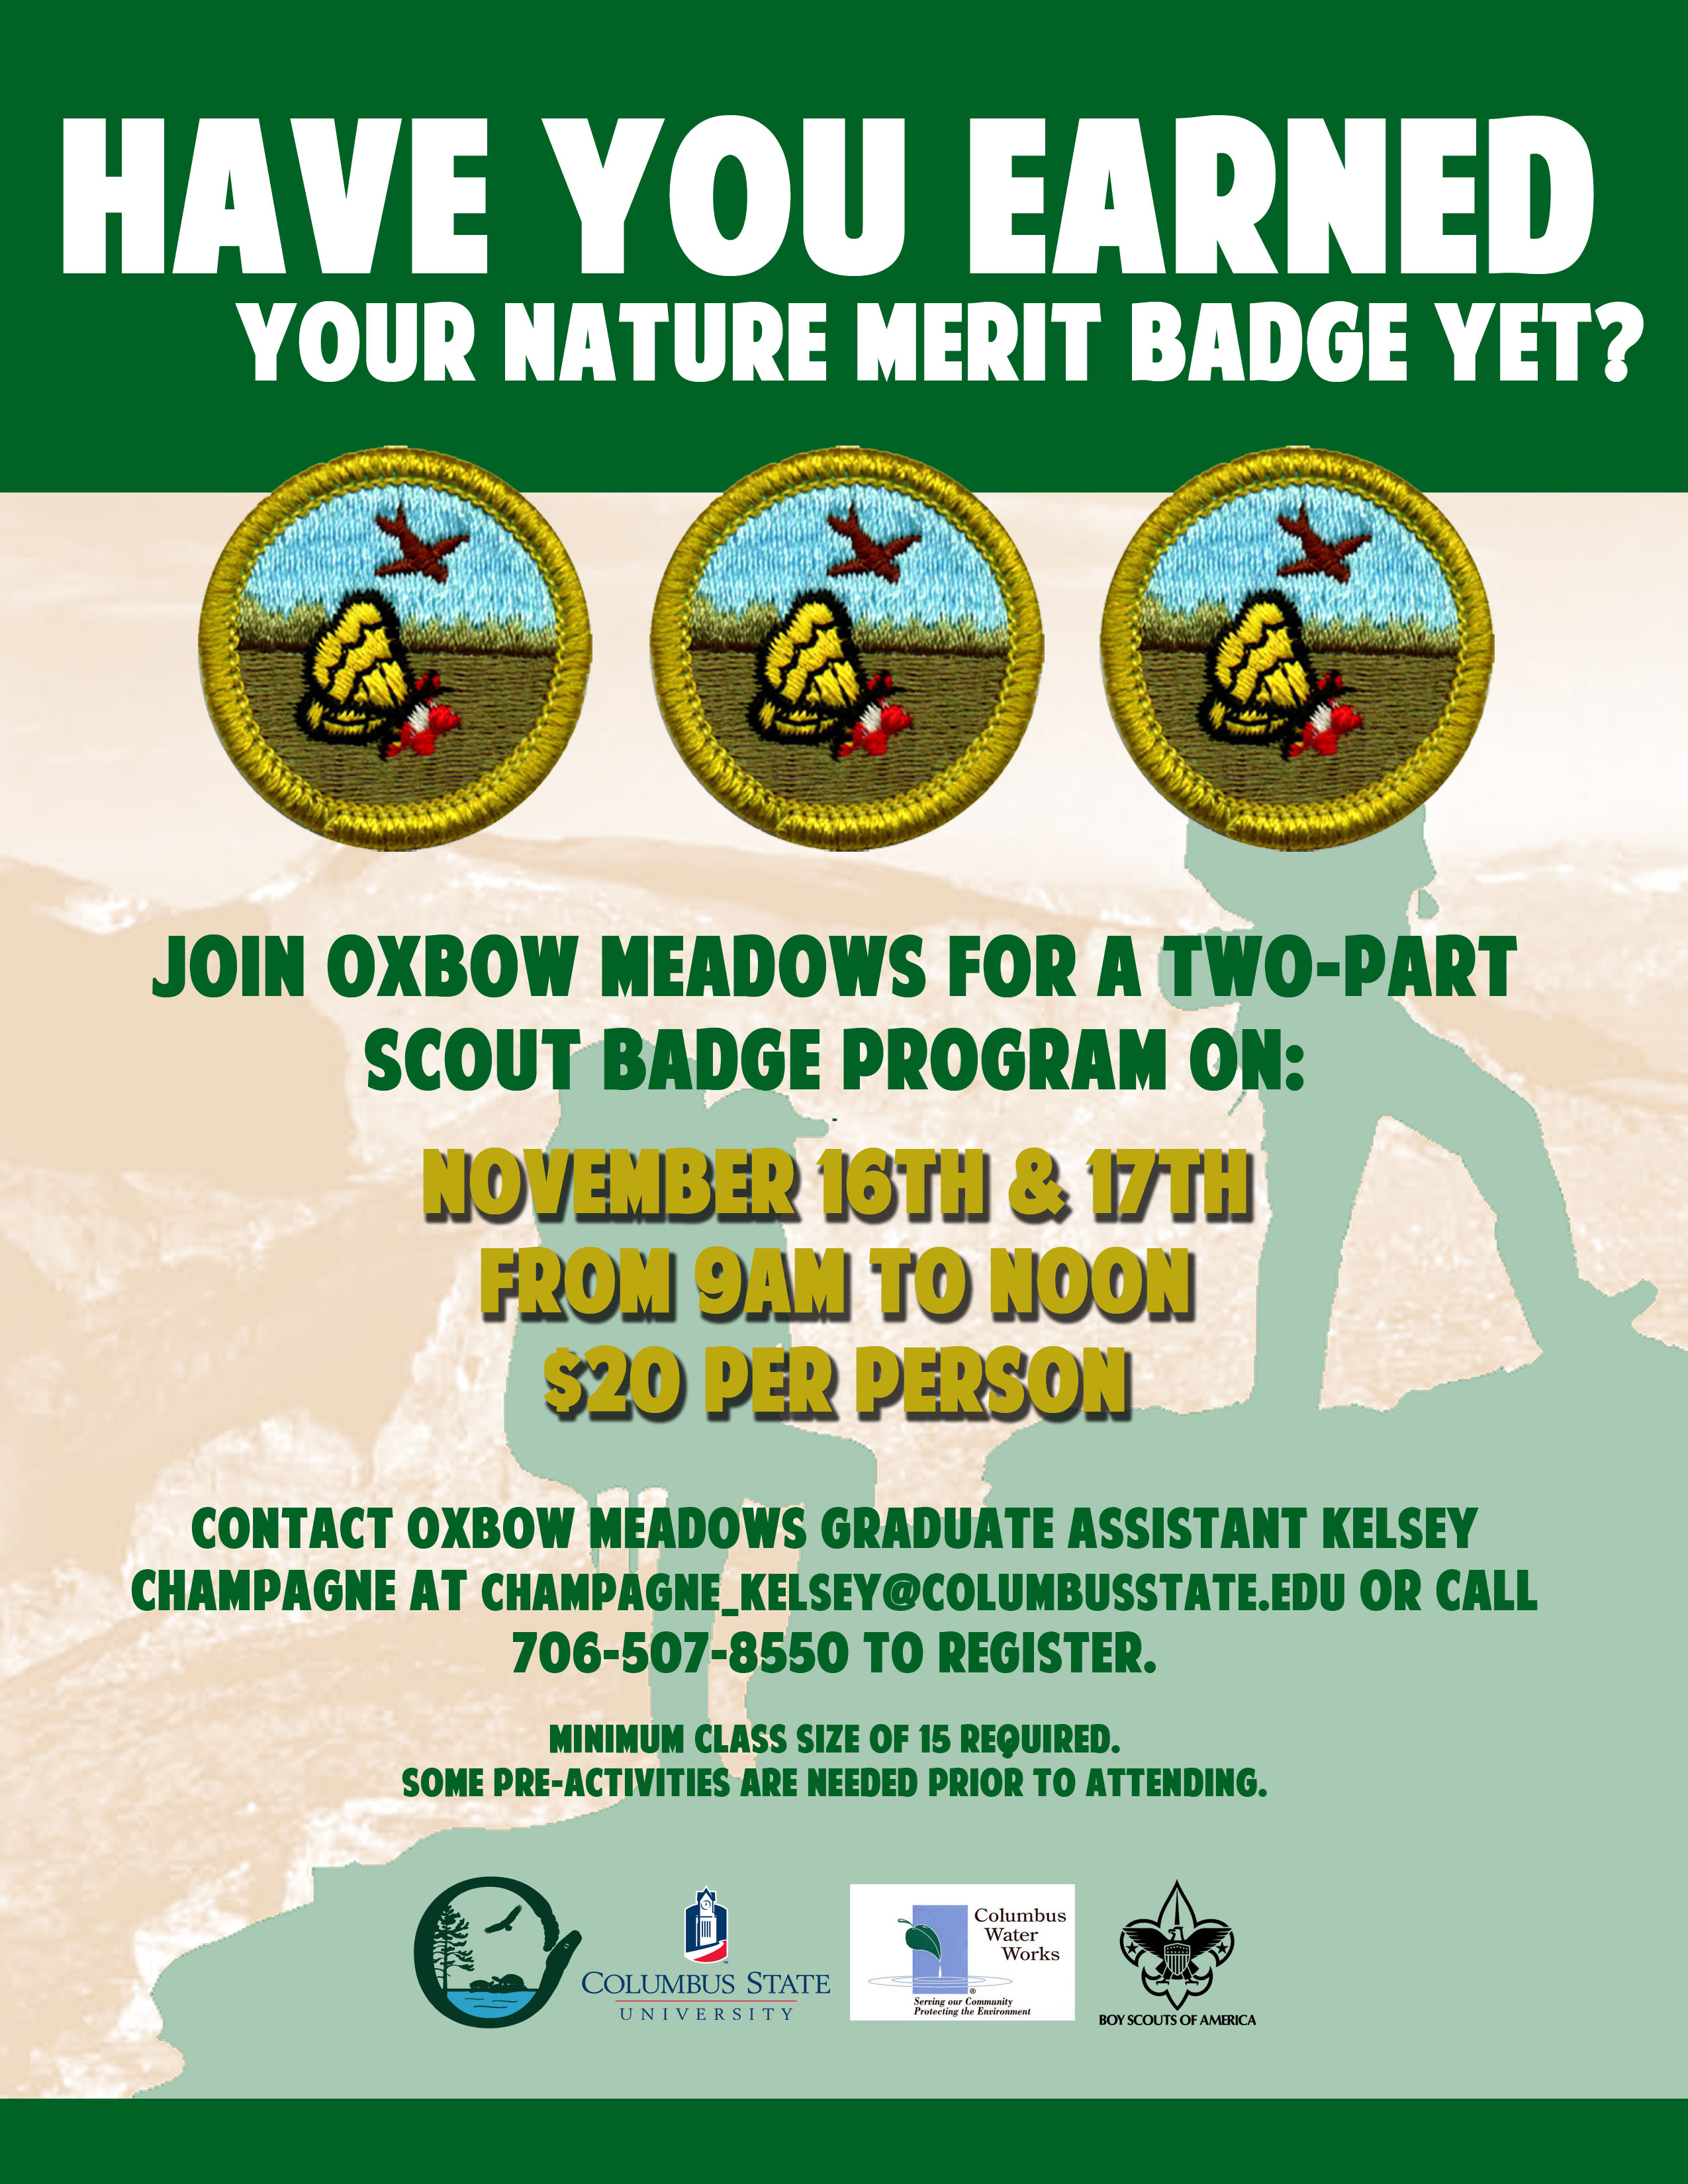 nature merit badge program for boy scouts muscogee moms local events parenting tips. Black Bedroom Furniture Sets. Home Design Ideas